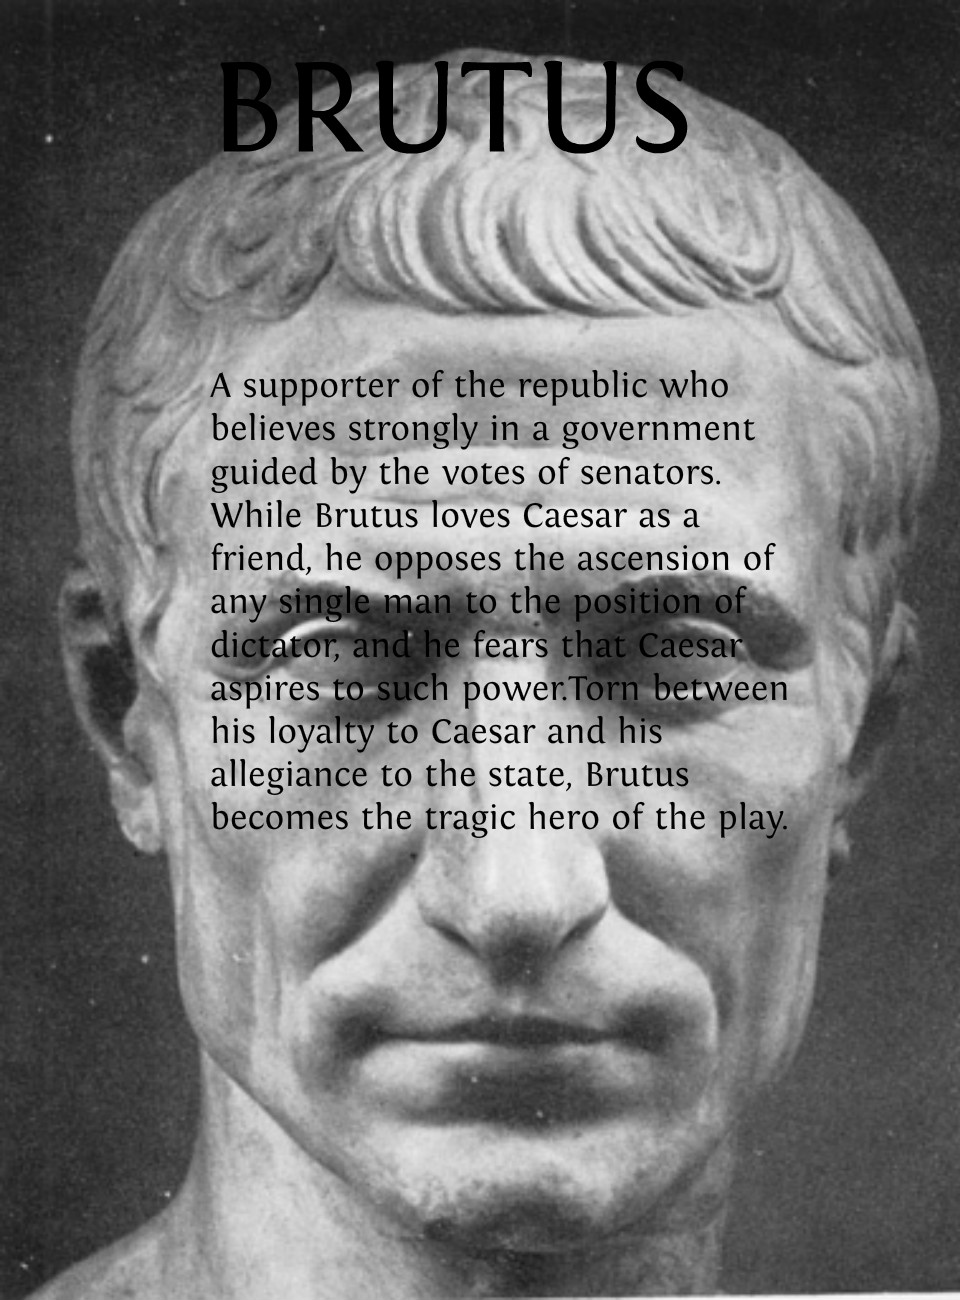 brutus tragic hero quotes